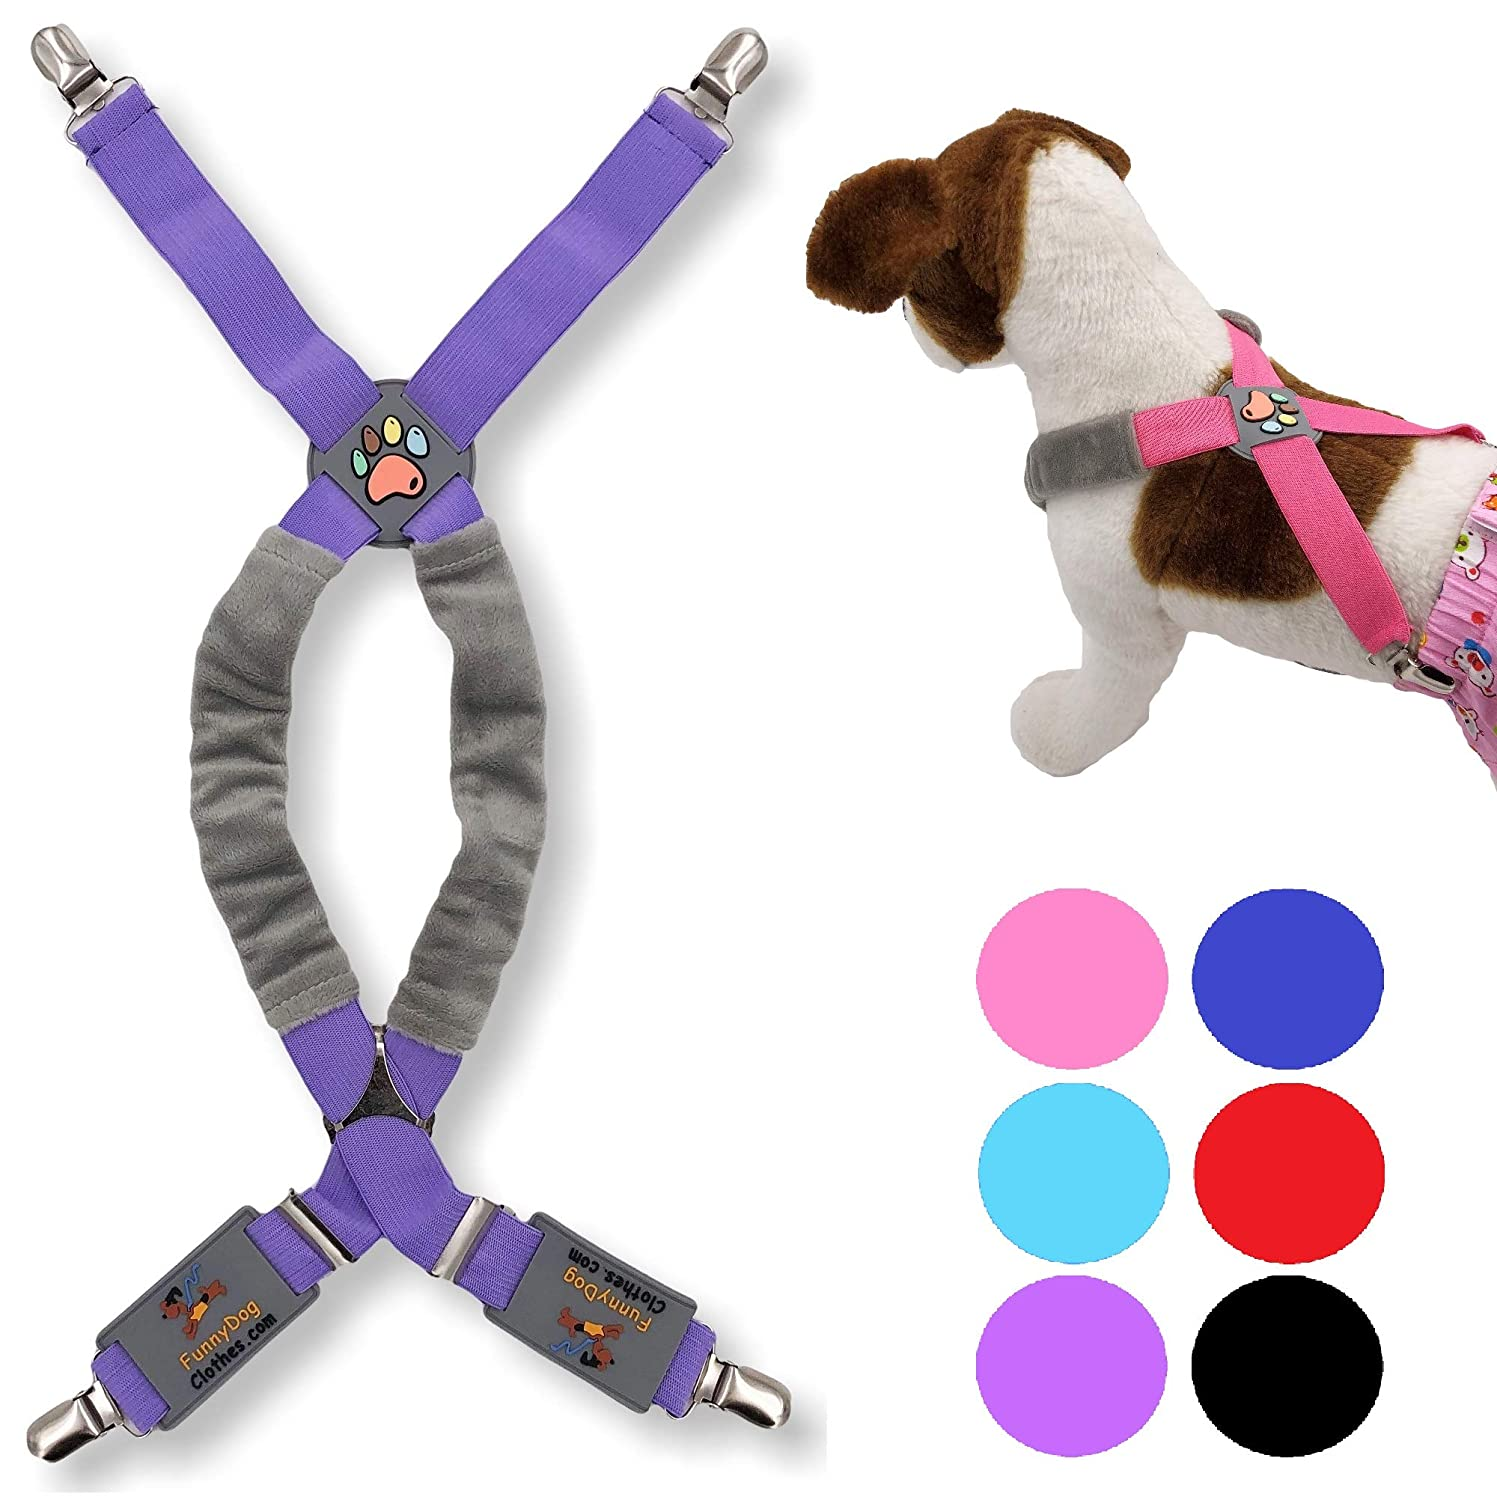 FunnyDogClothes Dog Suspenders for Pet Clothes Apparel Diapers Pants Skirt Belly Bands Small Medium and Large Dogs